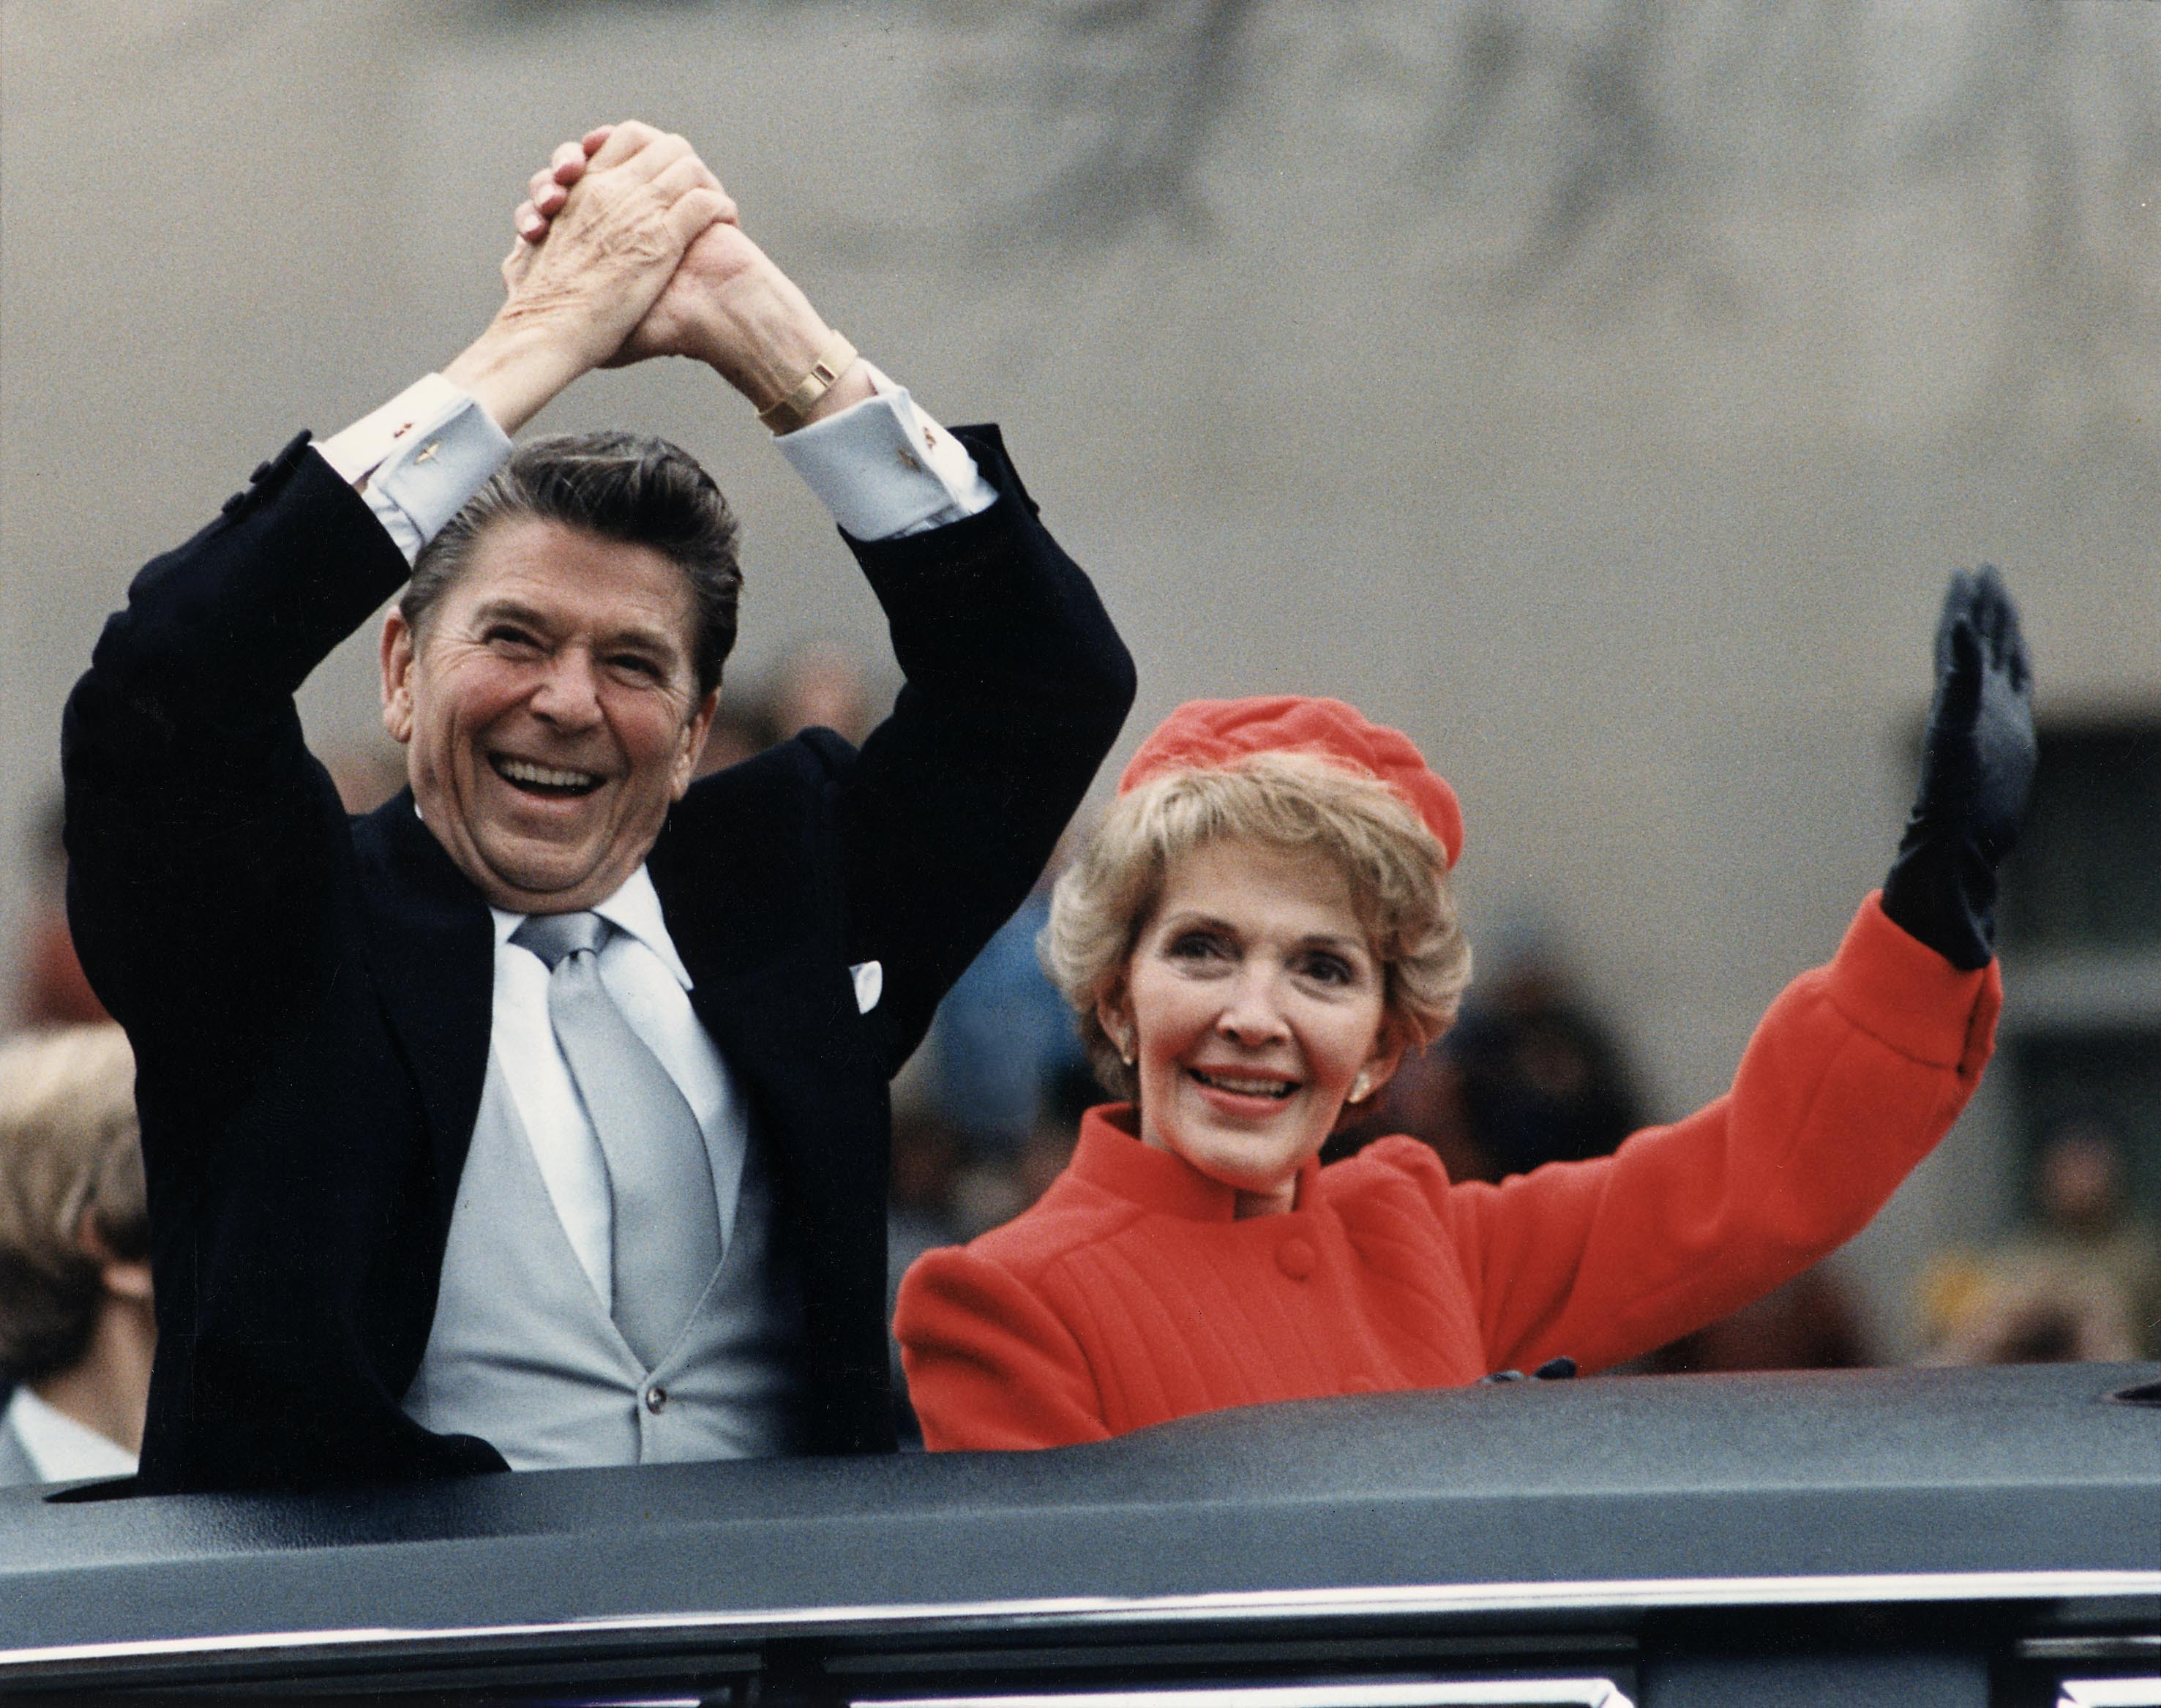 Photo of Ronald Reagan in a limo with his wife cheering at his inauguration